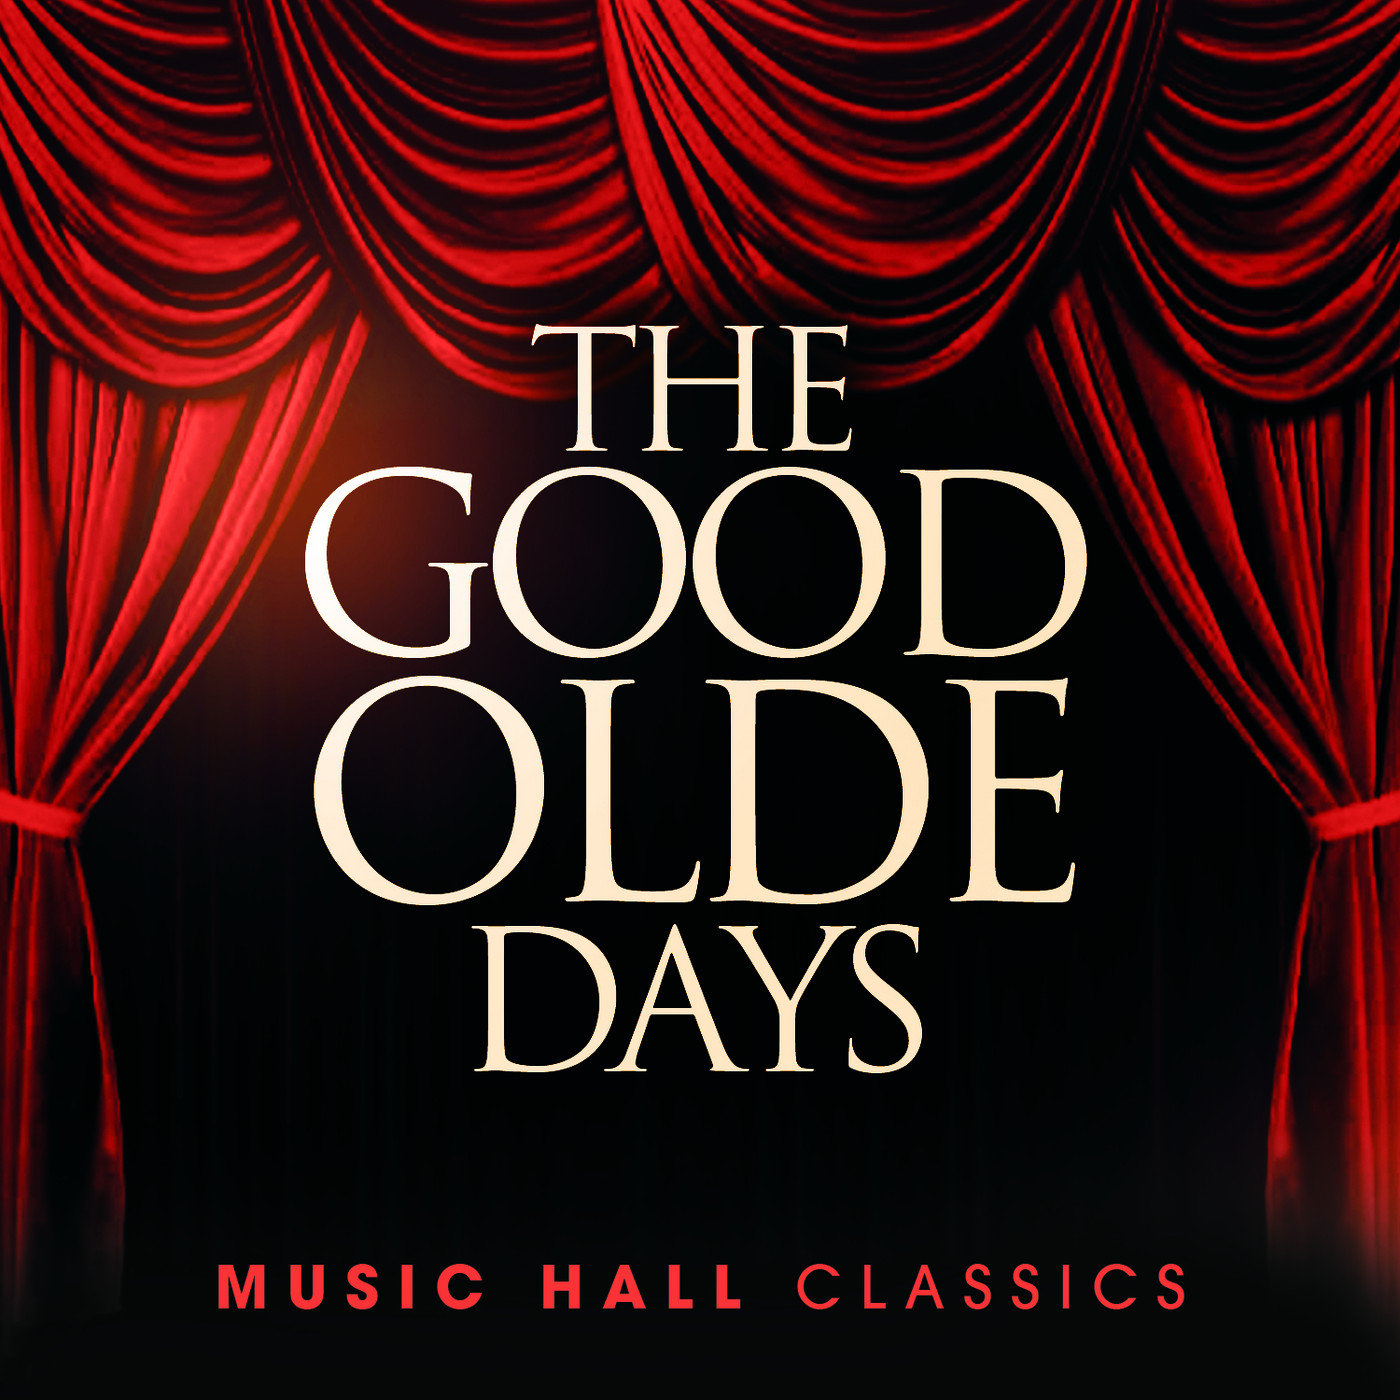 the good old days Good old days lyrics: i wish somebody would have told me, babe / someday, these will be the good old days / all the love you won't forget / and all these reckless nights you won't regret / someday soon.